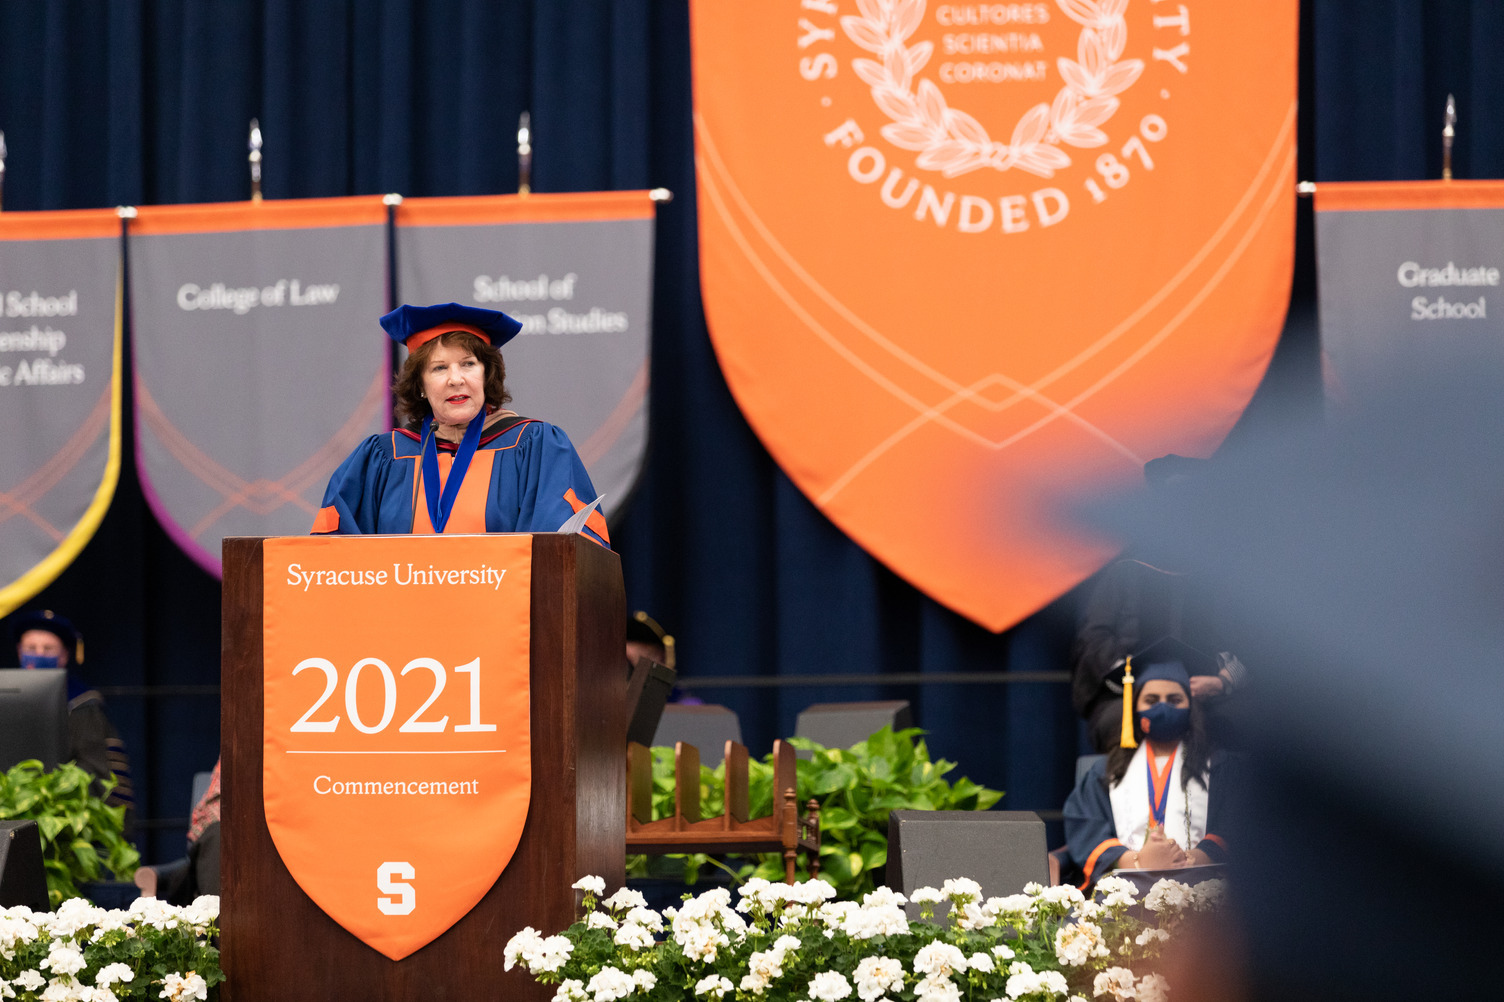 Kathy Walters '73, chair of the Board of Trustees, addresses students at Commencement 2021